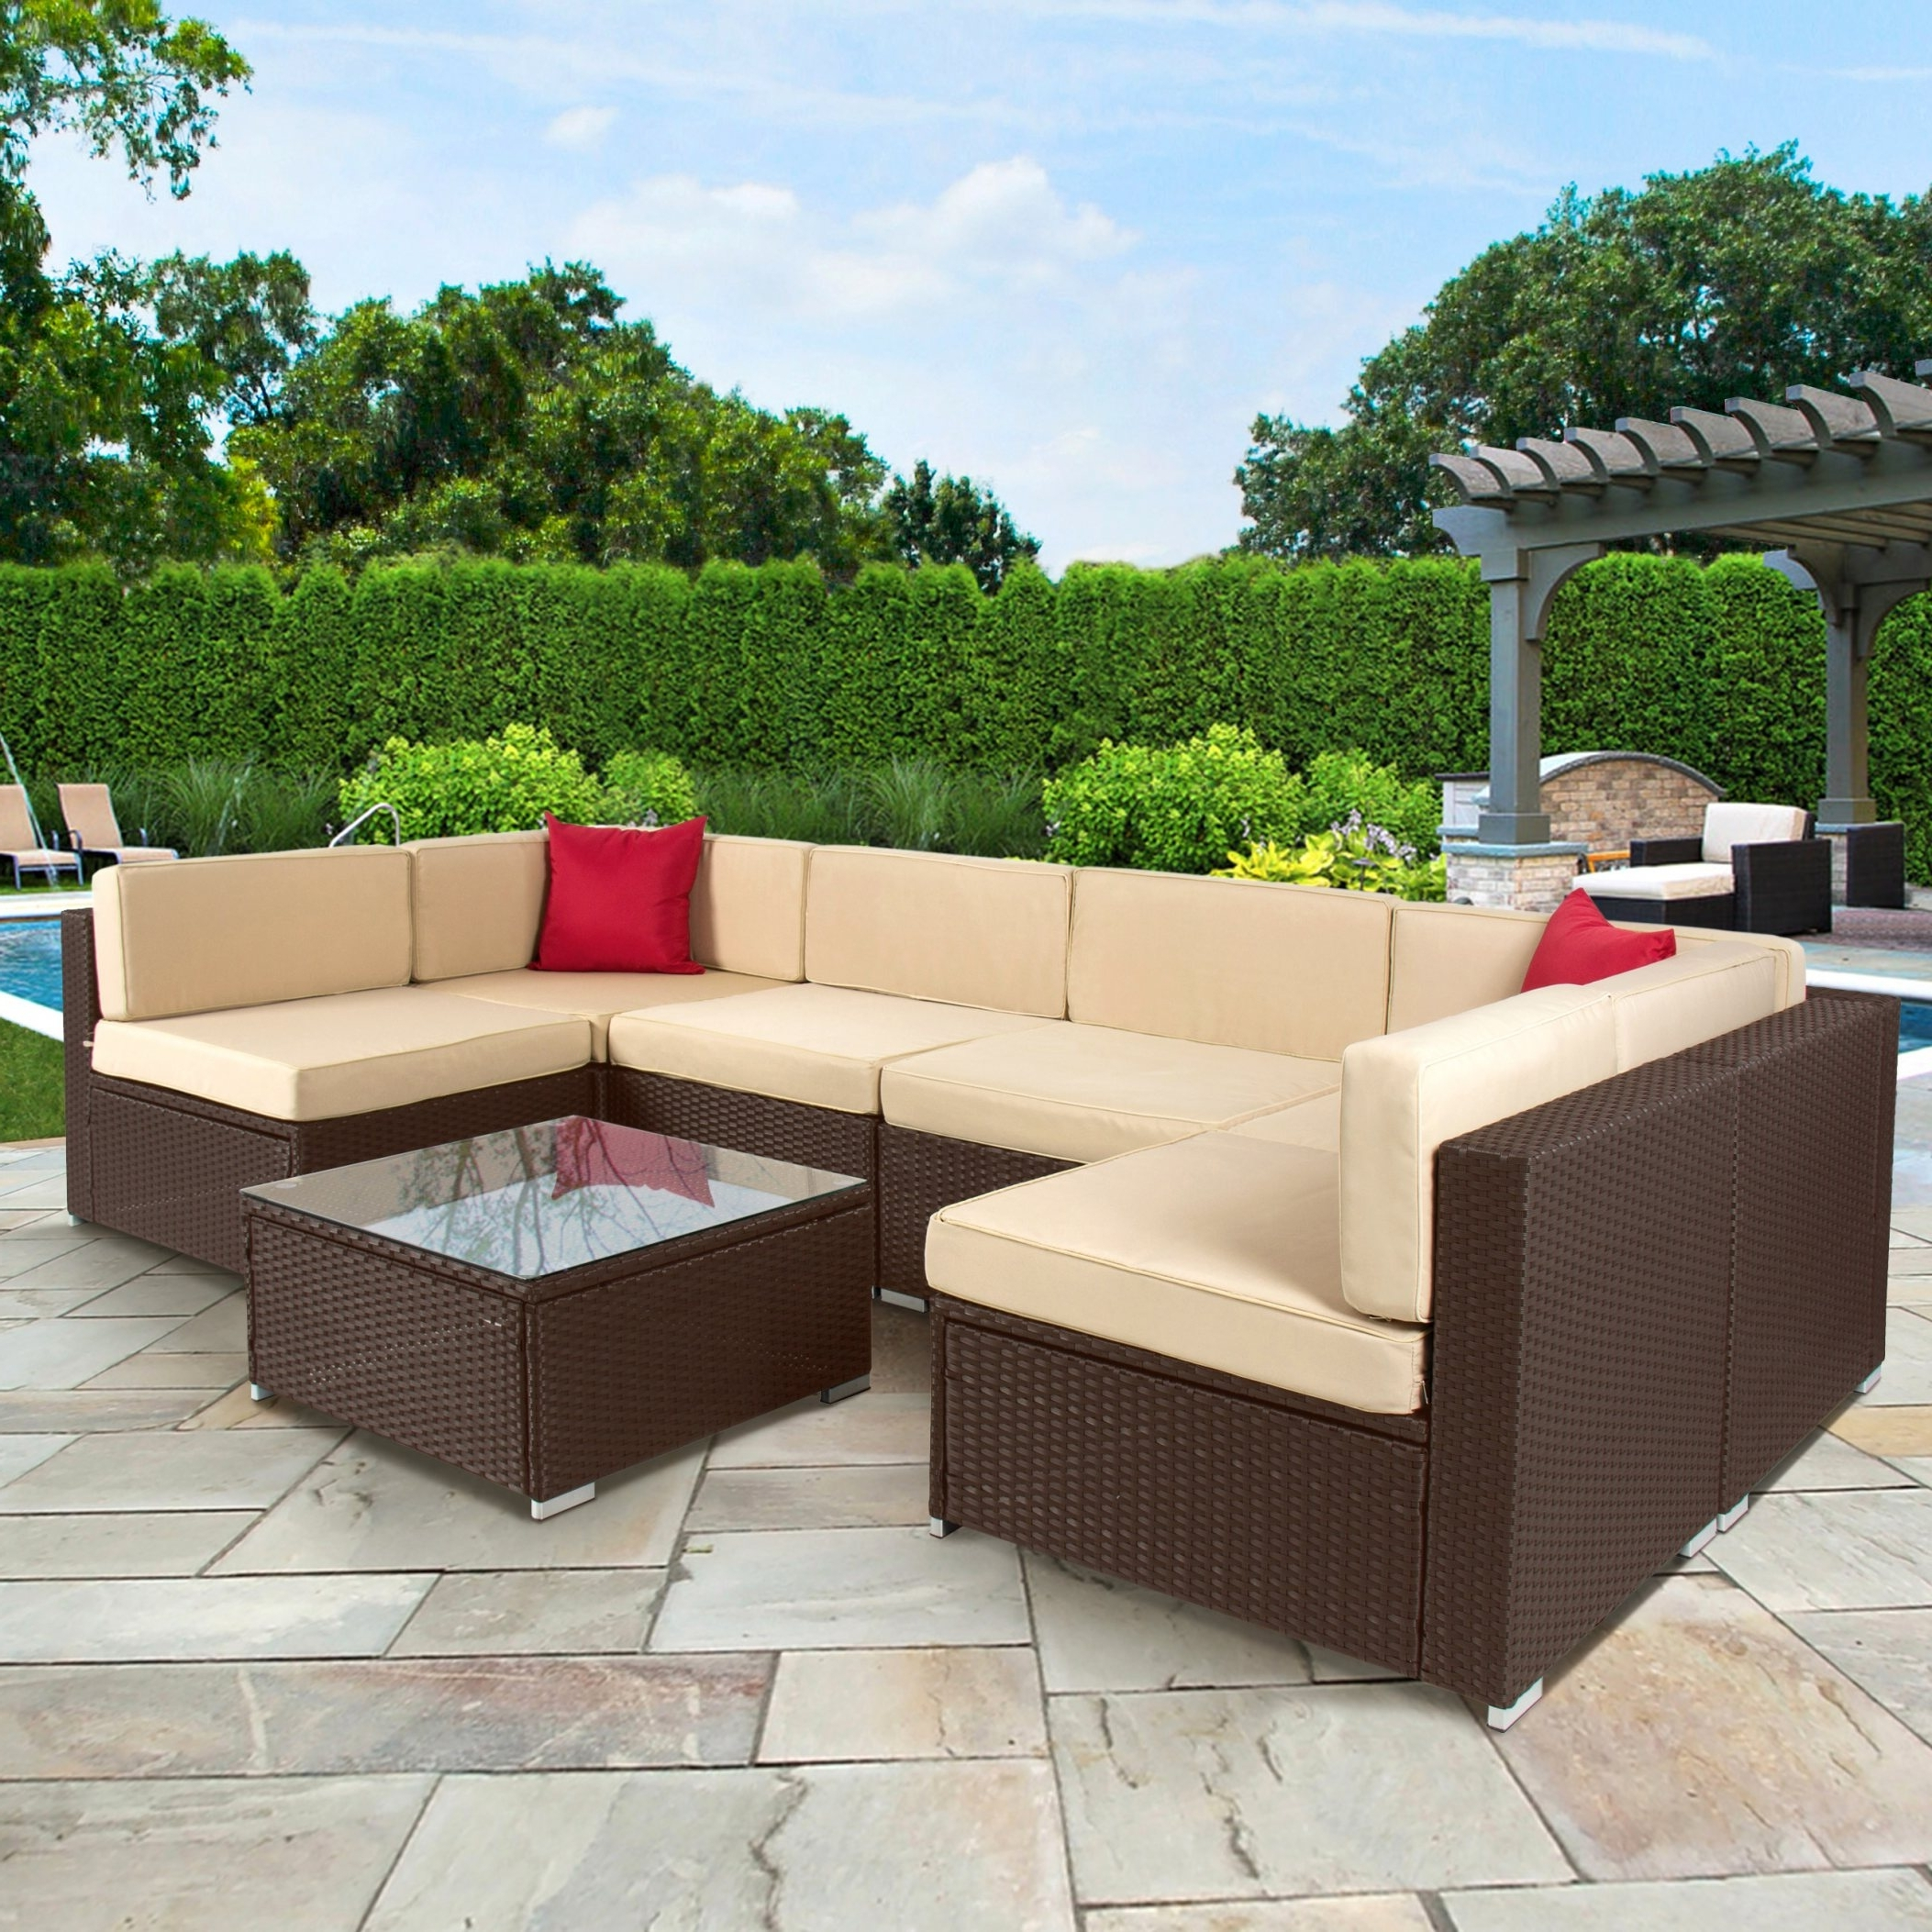 Outdoor Patio Sofas #6 Outsunny 7 Piece Outdoor Patio Rattan Pertaining To Current Patio Sofas (View 15 of 20)